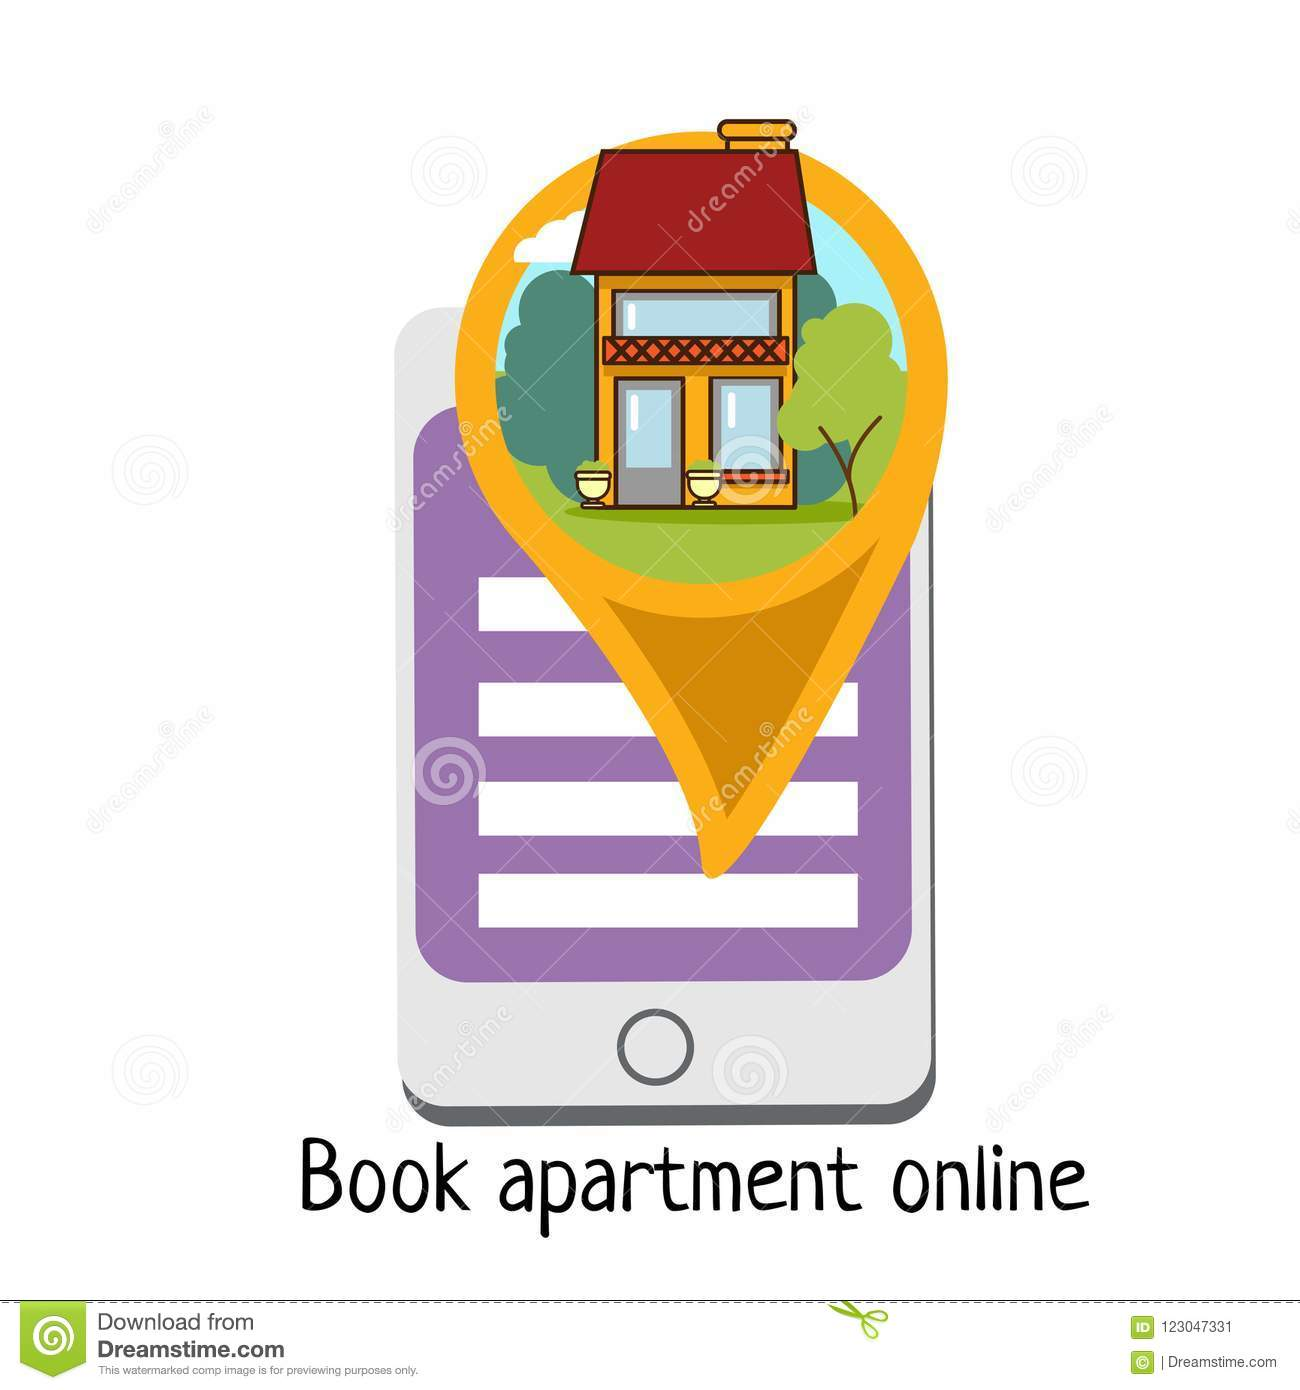 Online Apartment, House Or Flat Booking Service Icon, Flat ...